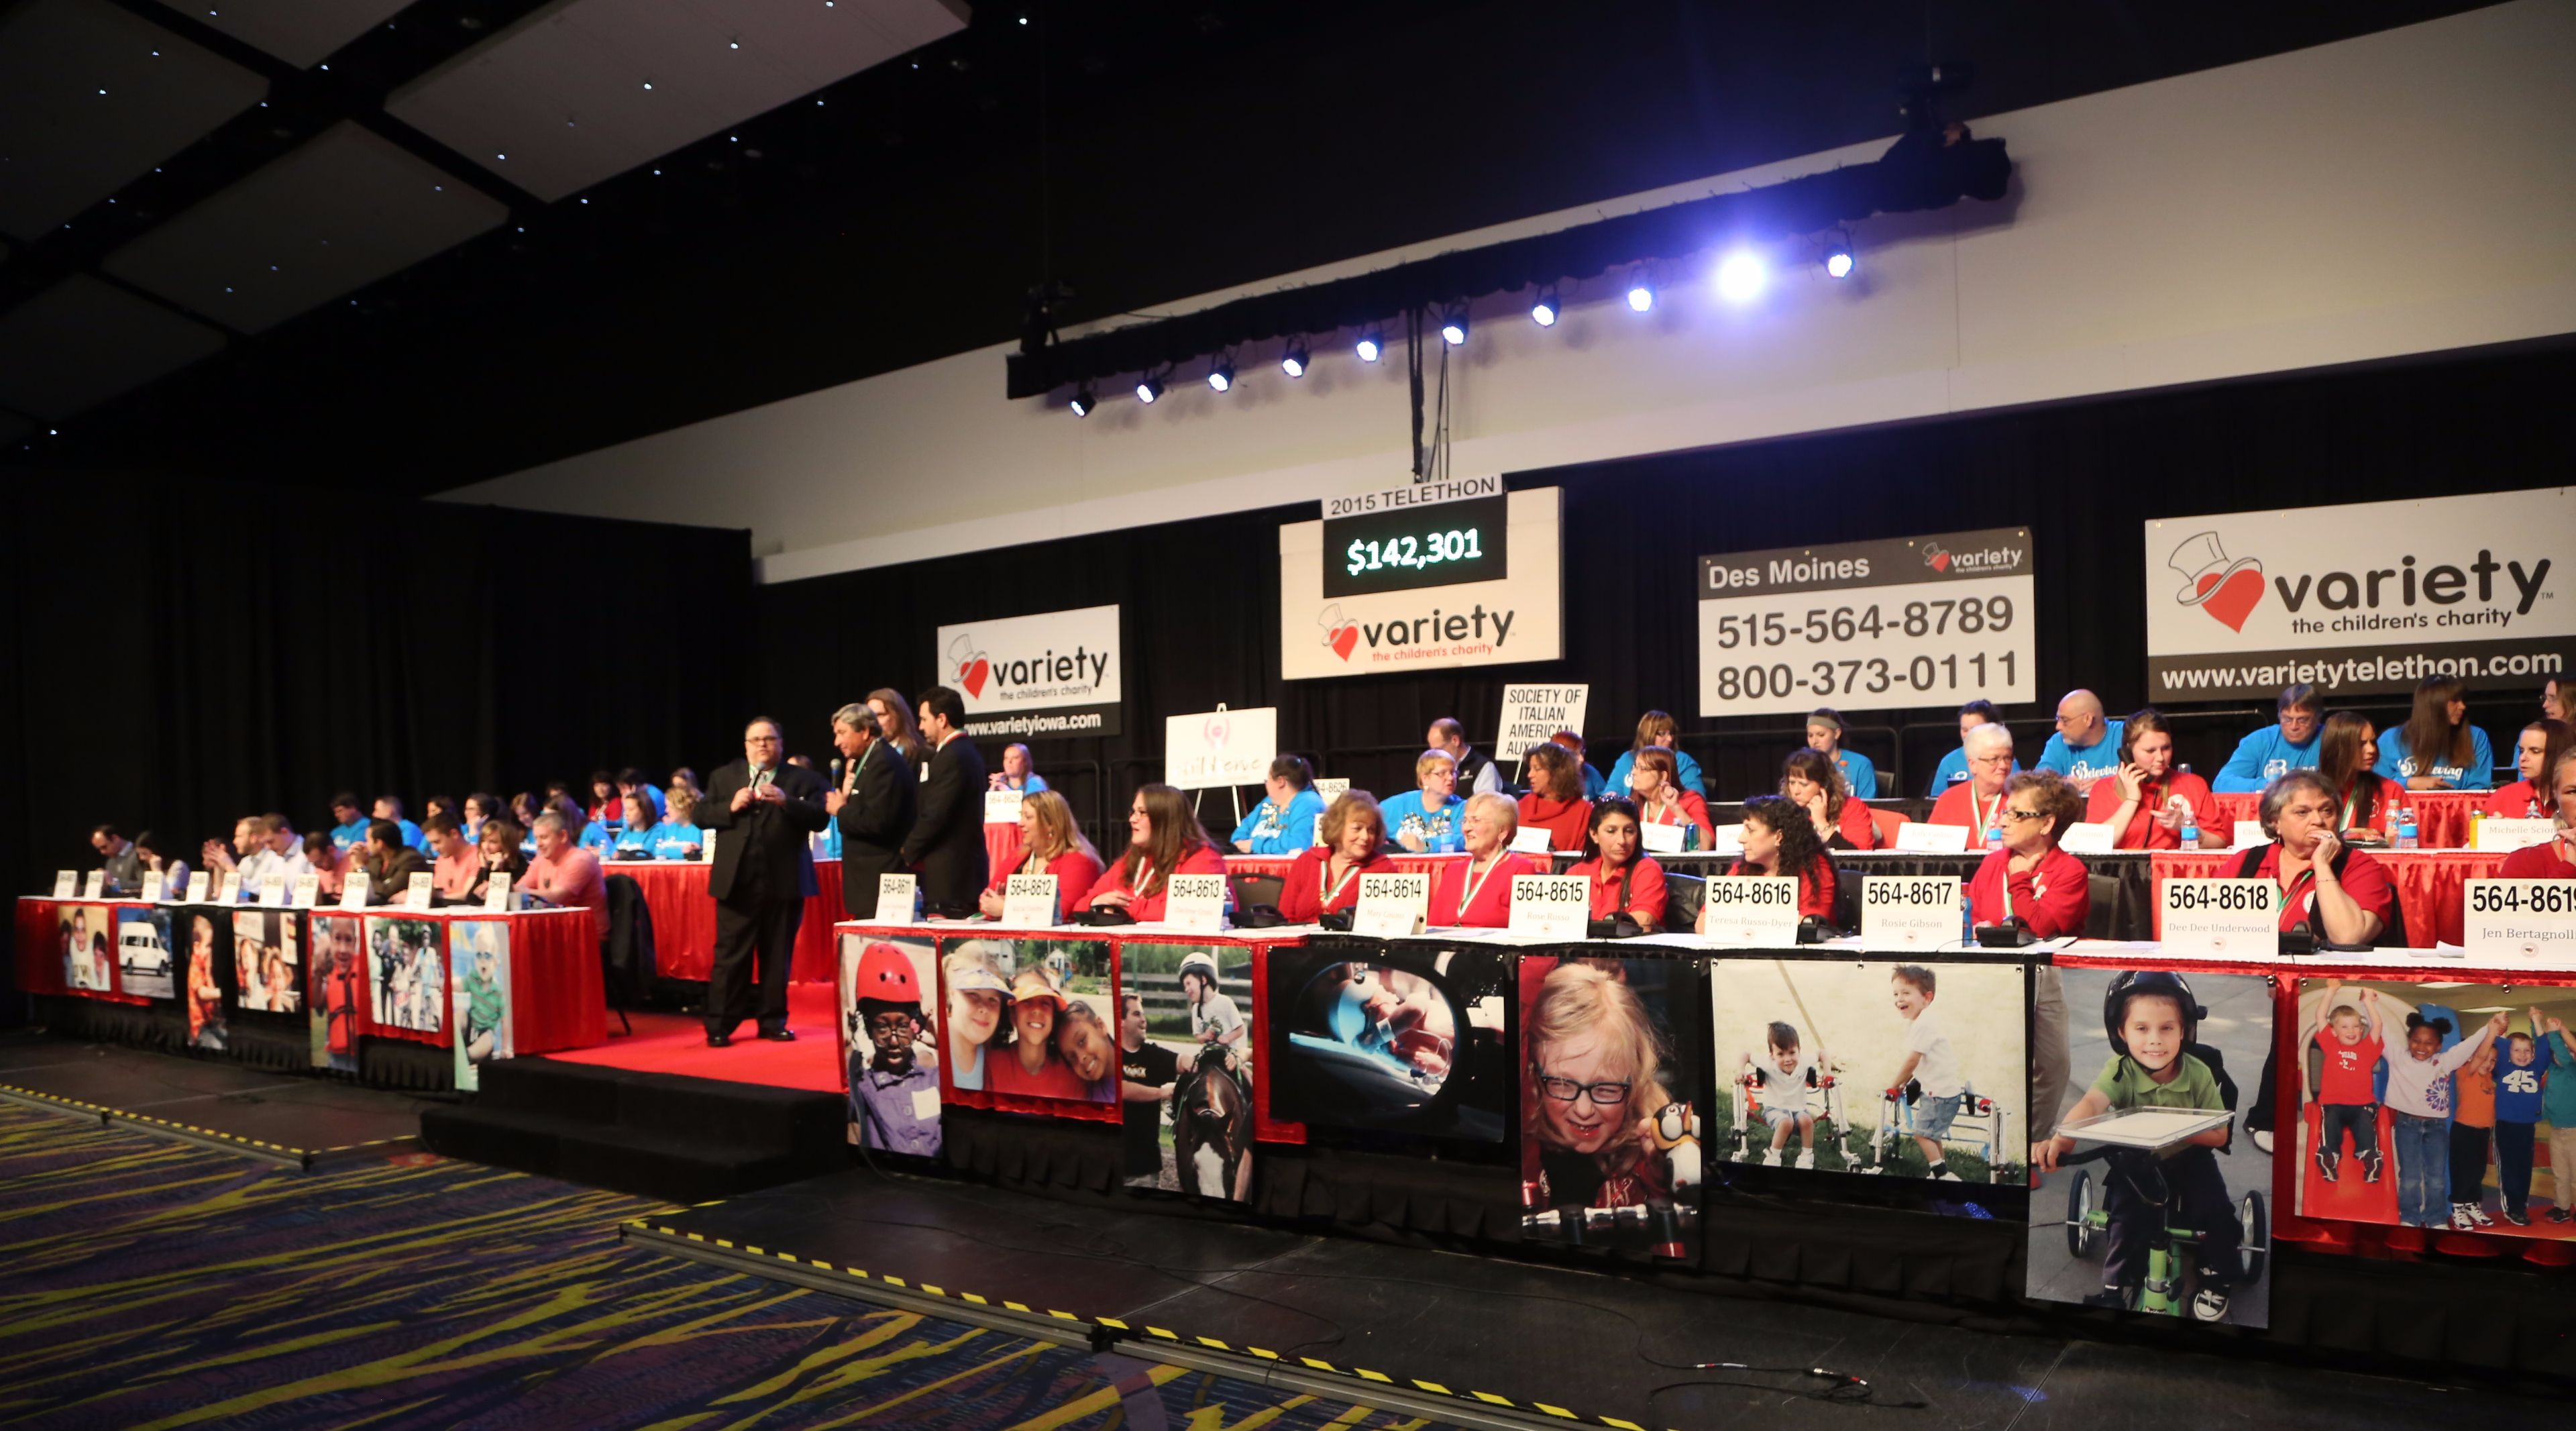 VIPs and Volunteers at the variety telethon